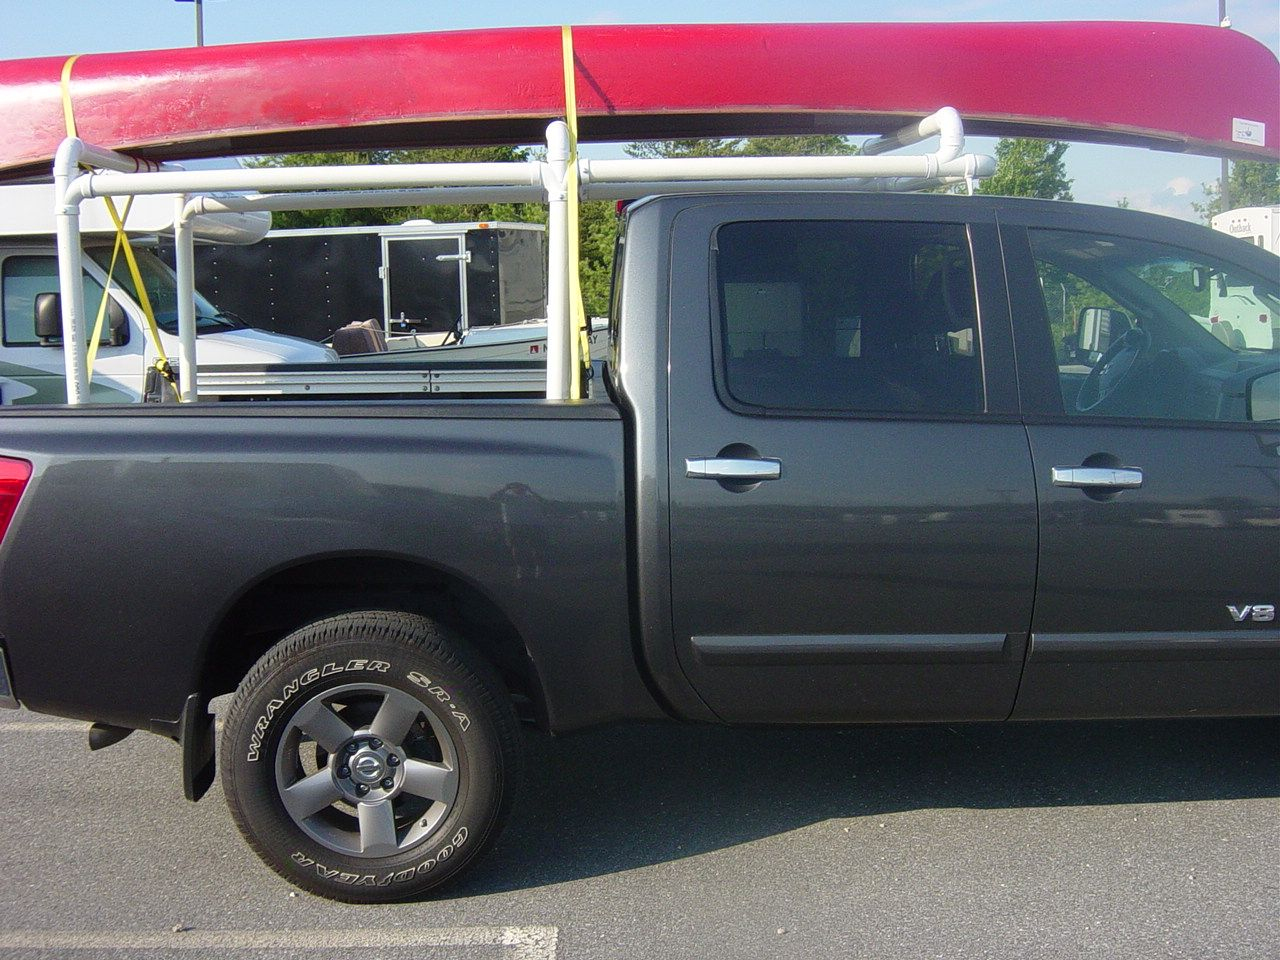 Diy Pvc Canoe Rack For Truck Google Search Pvc